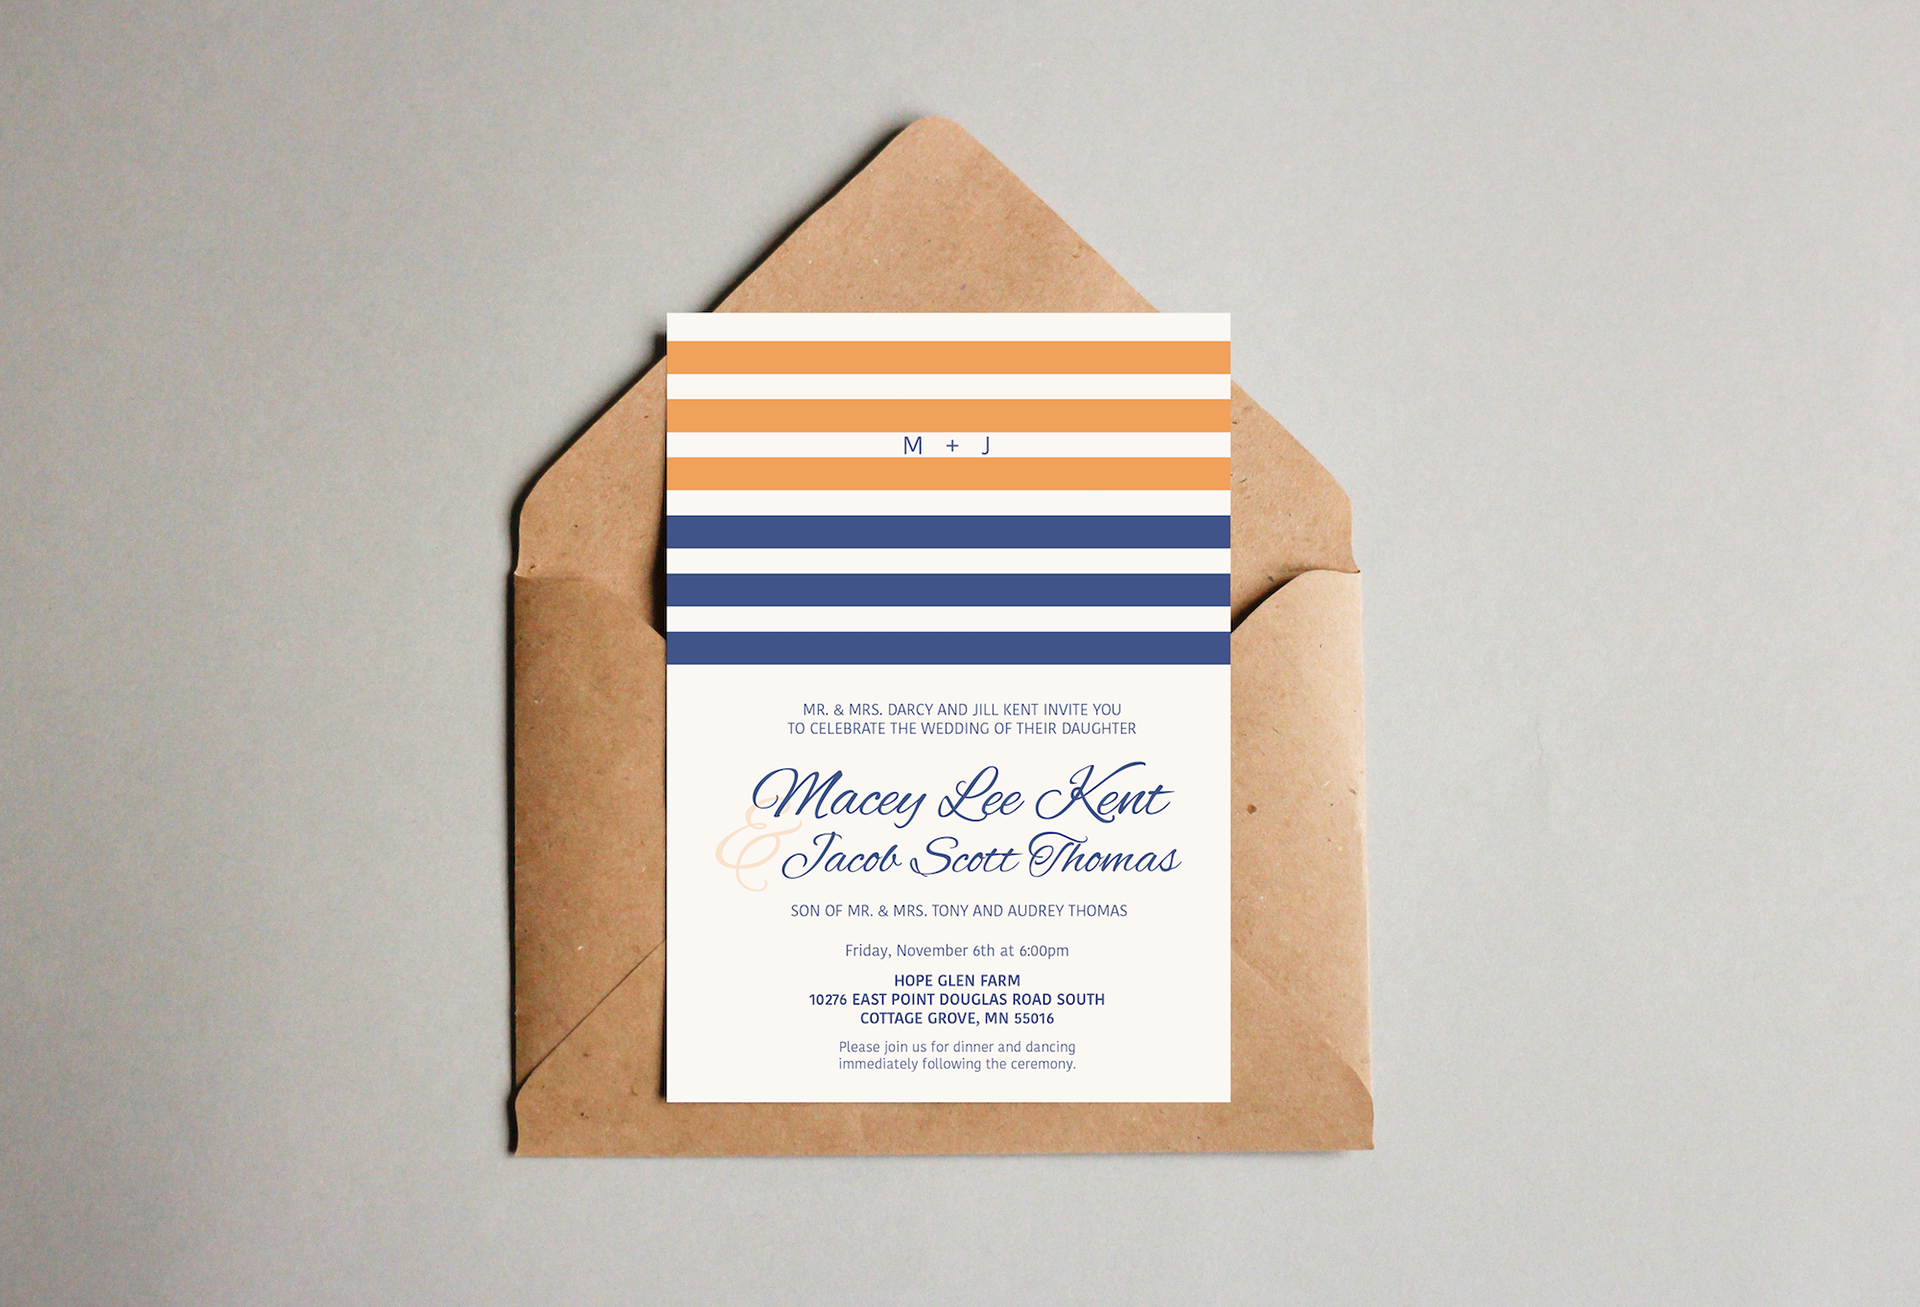 Chrissie Parker - Macey & Jacob Wedding Invitations